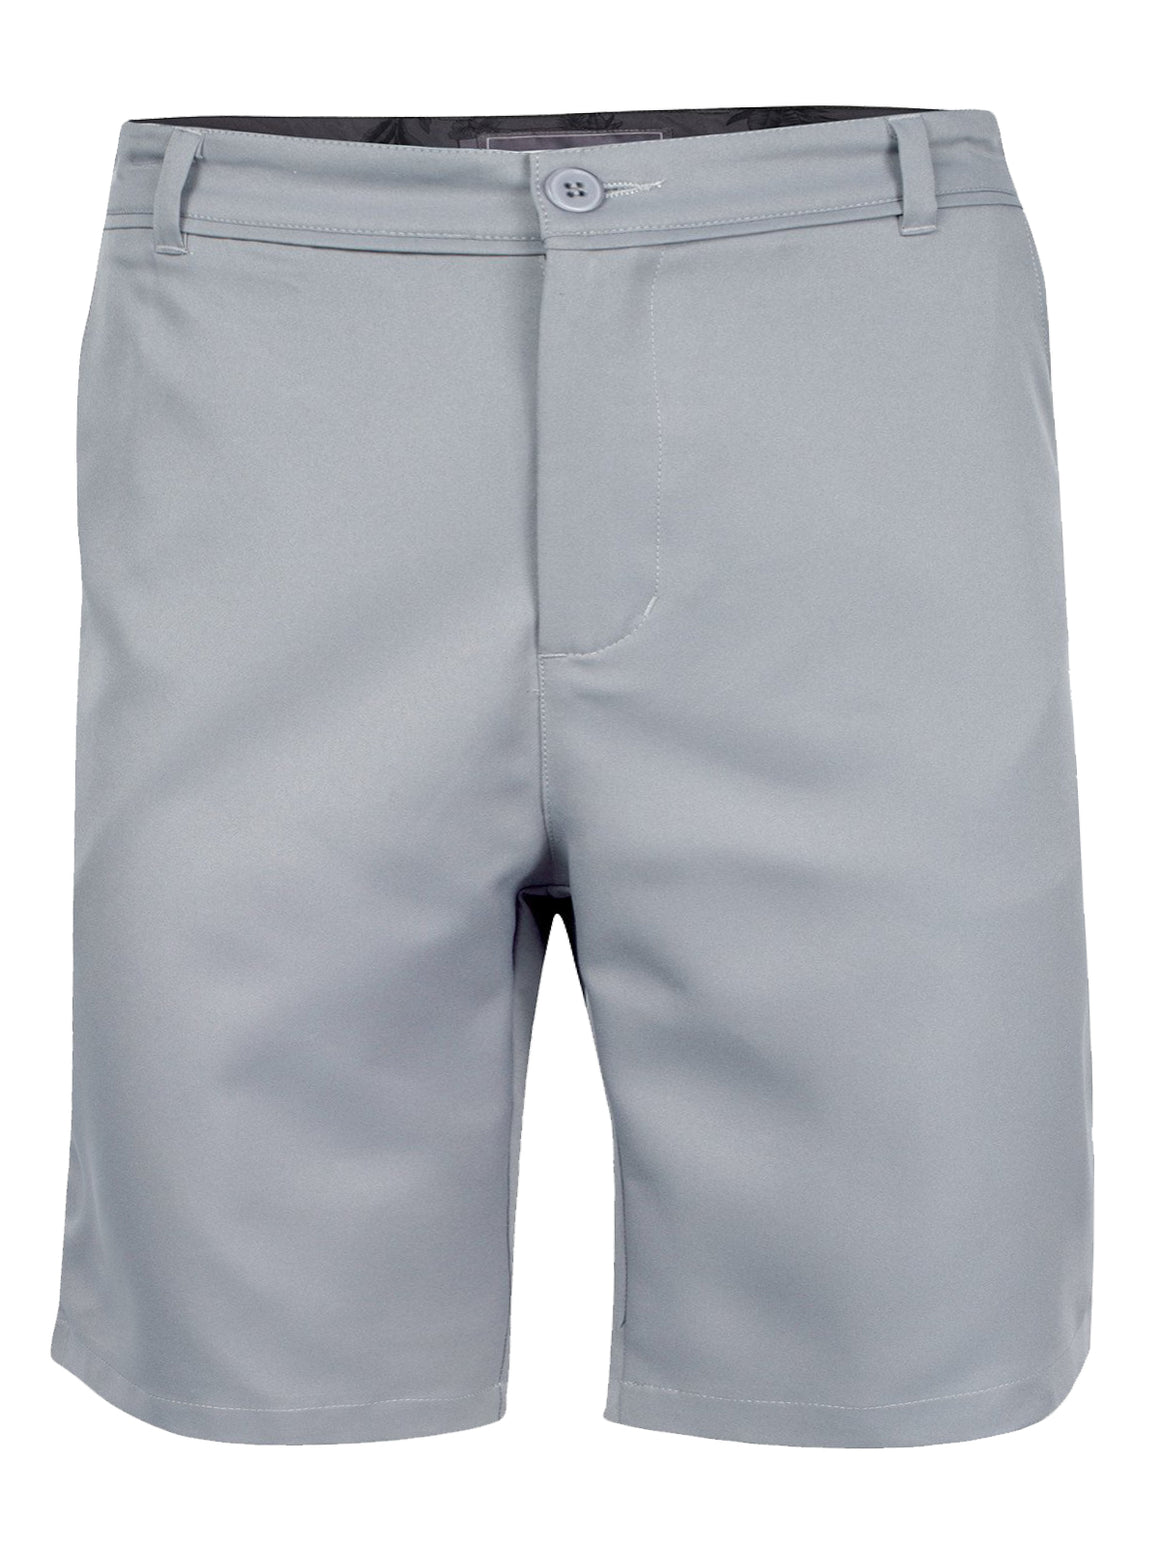 Wayfarer FIT101 Short - Opal Grey